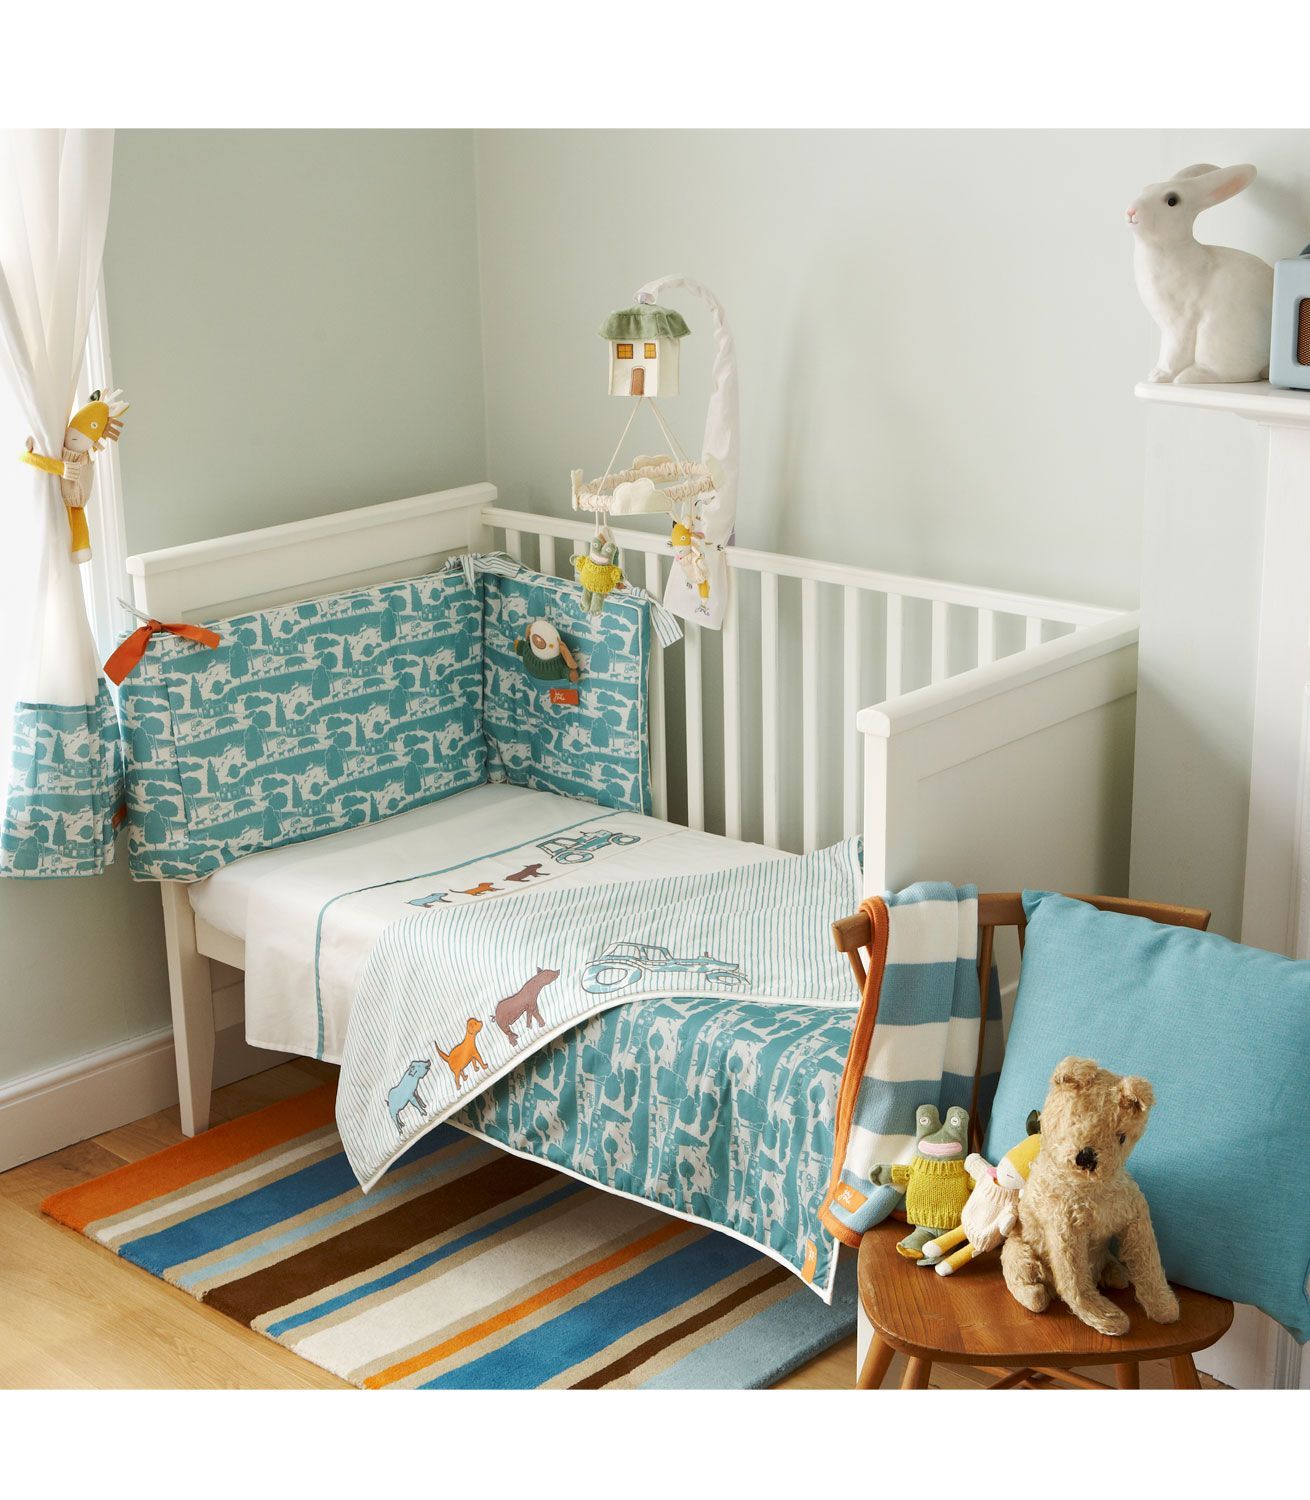 Baby Nursery Cot 2Pc Quilt /& Bumper Bedding Bale Set Jungle animals